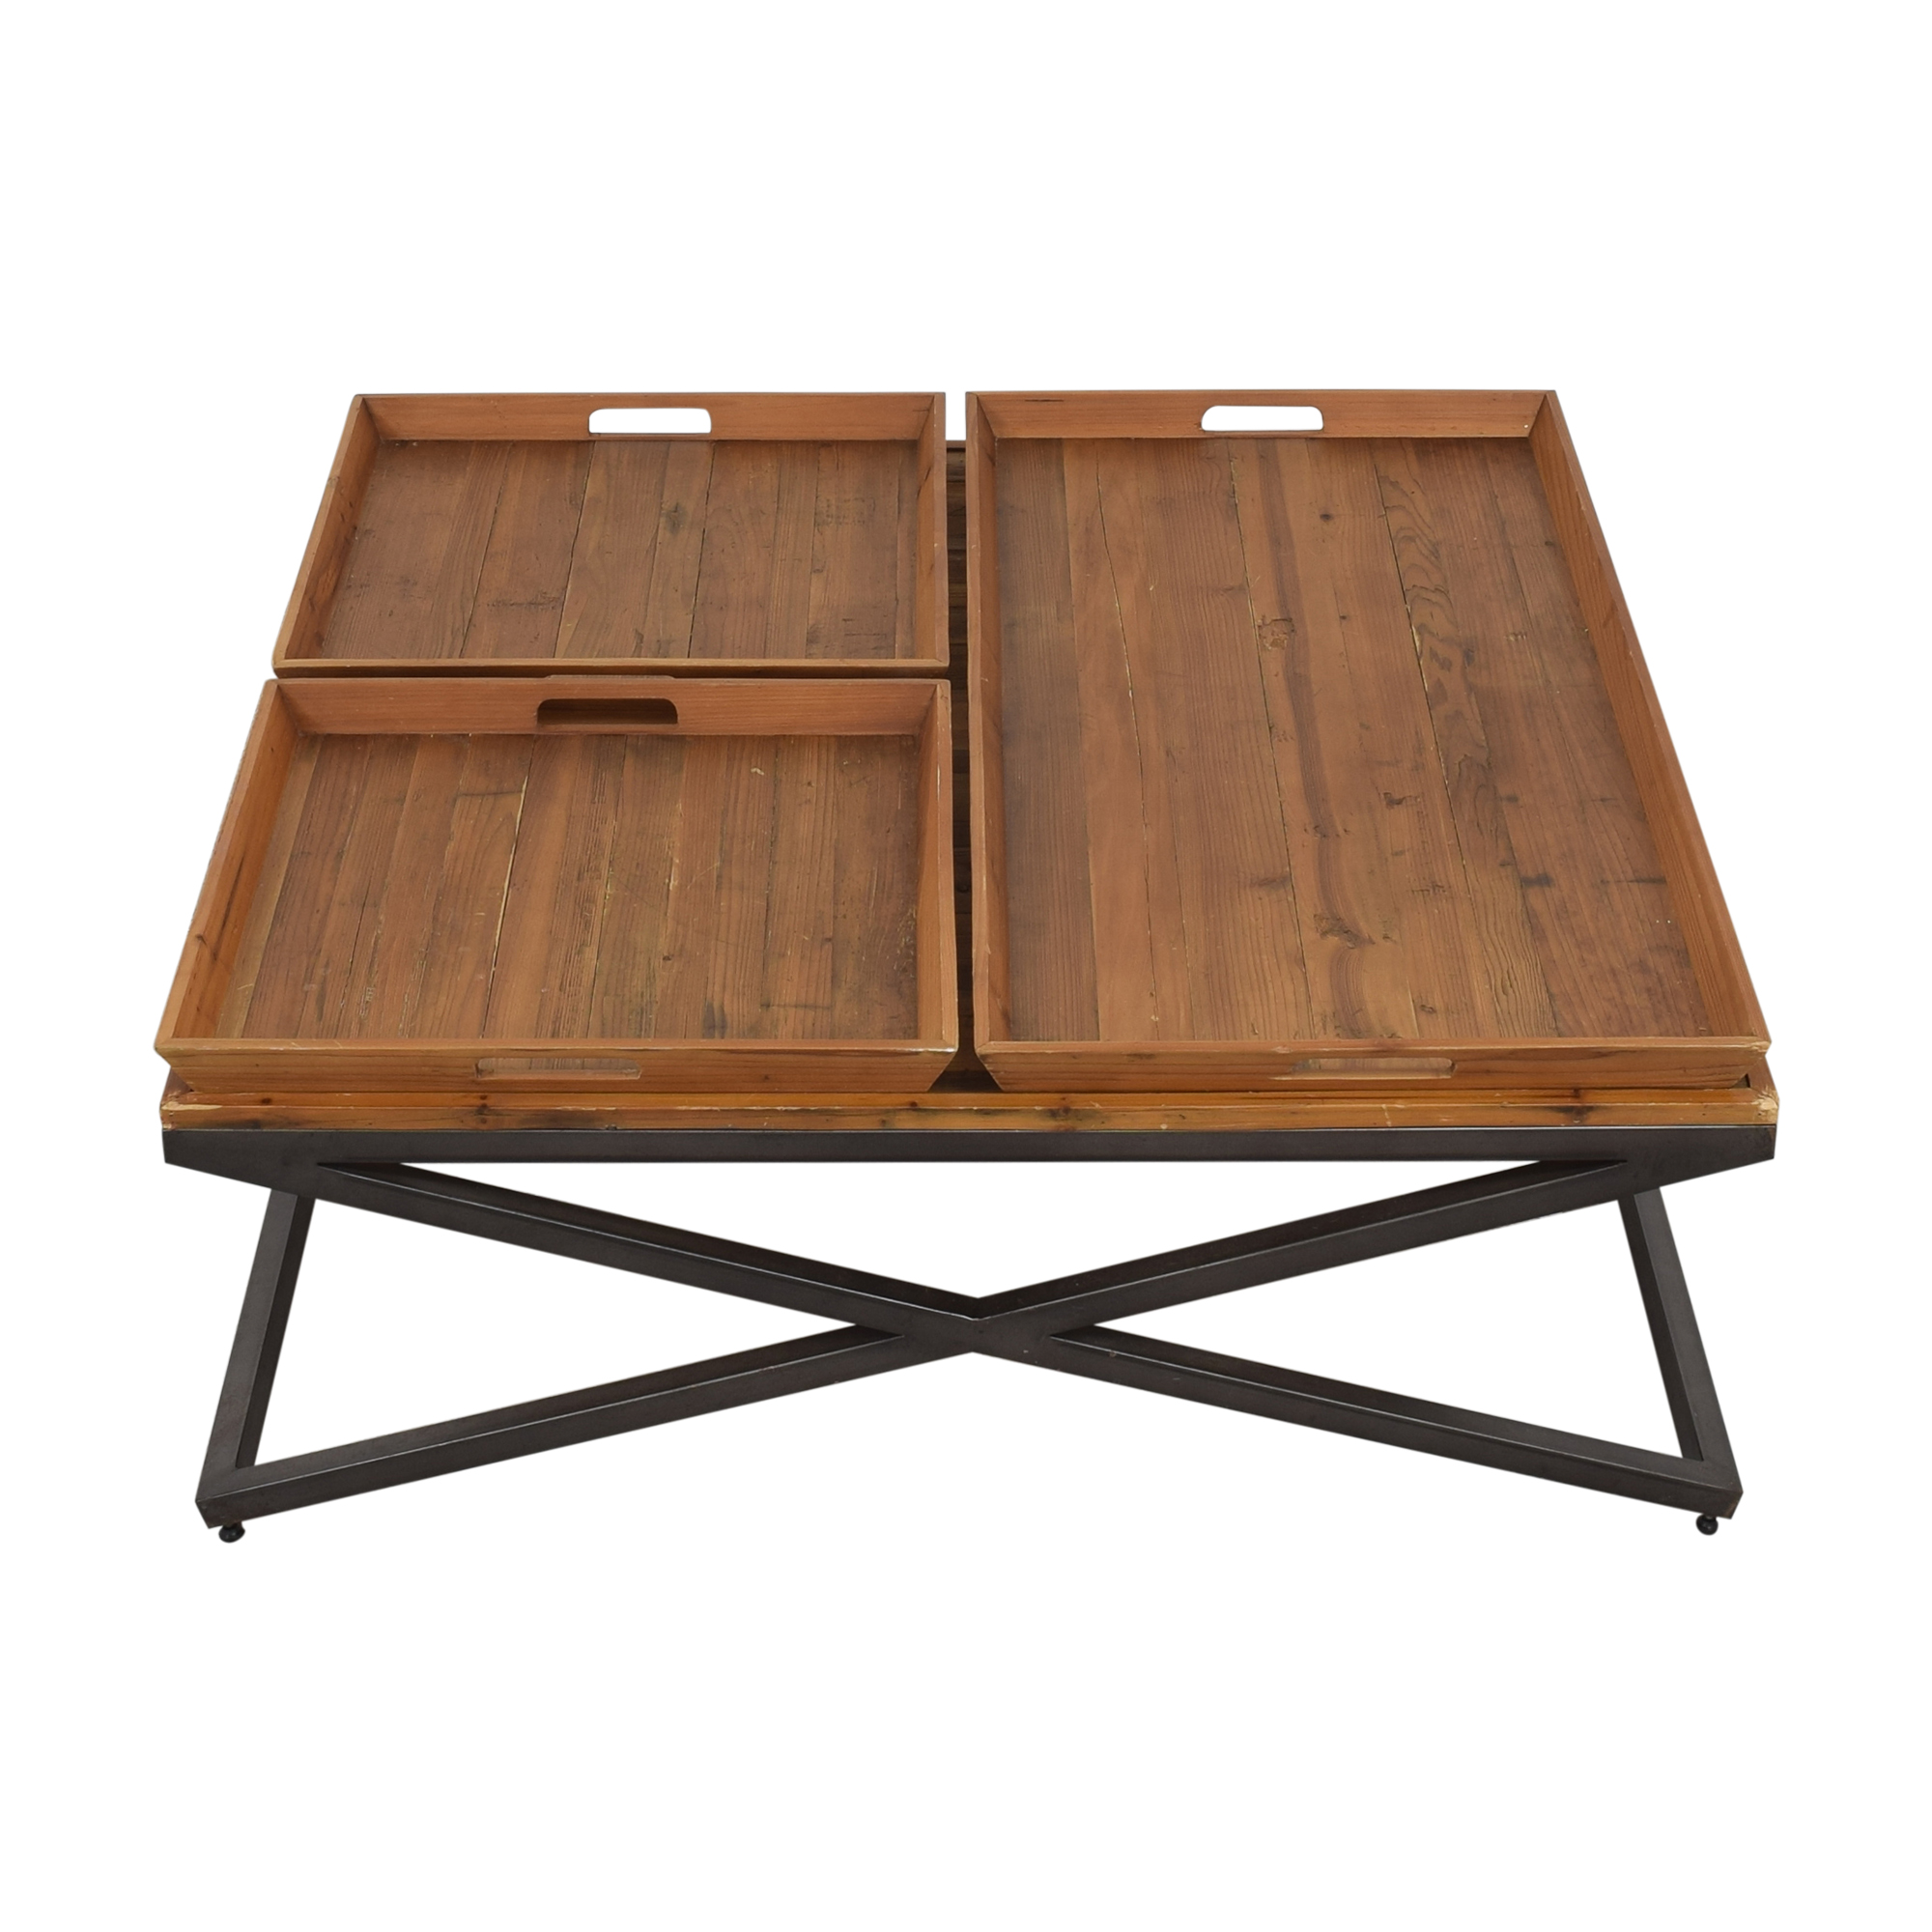 Four Hands Four Hands Jax Square Coffee Table price